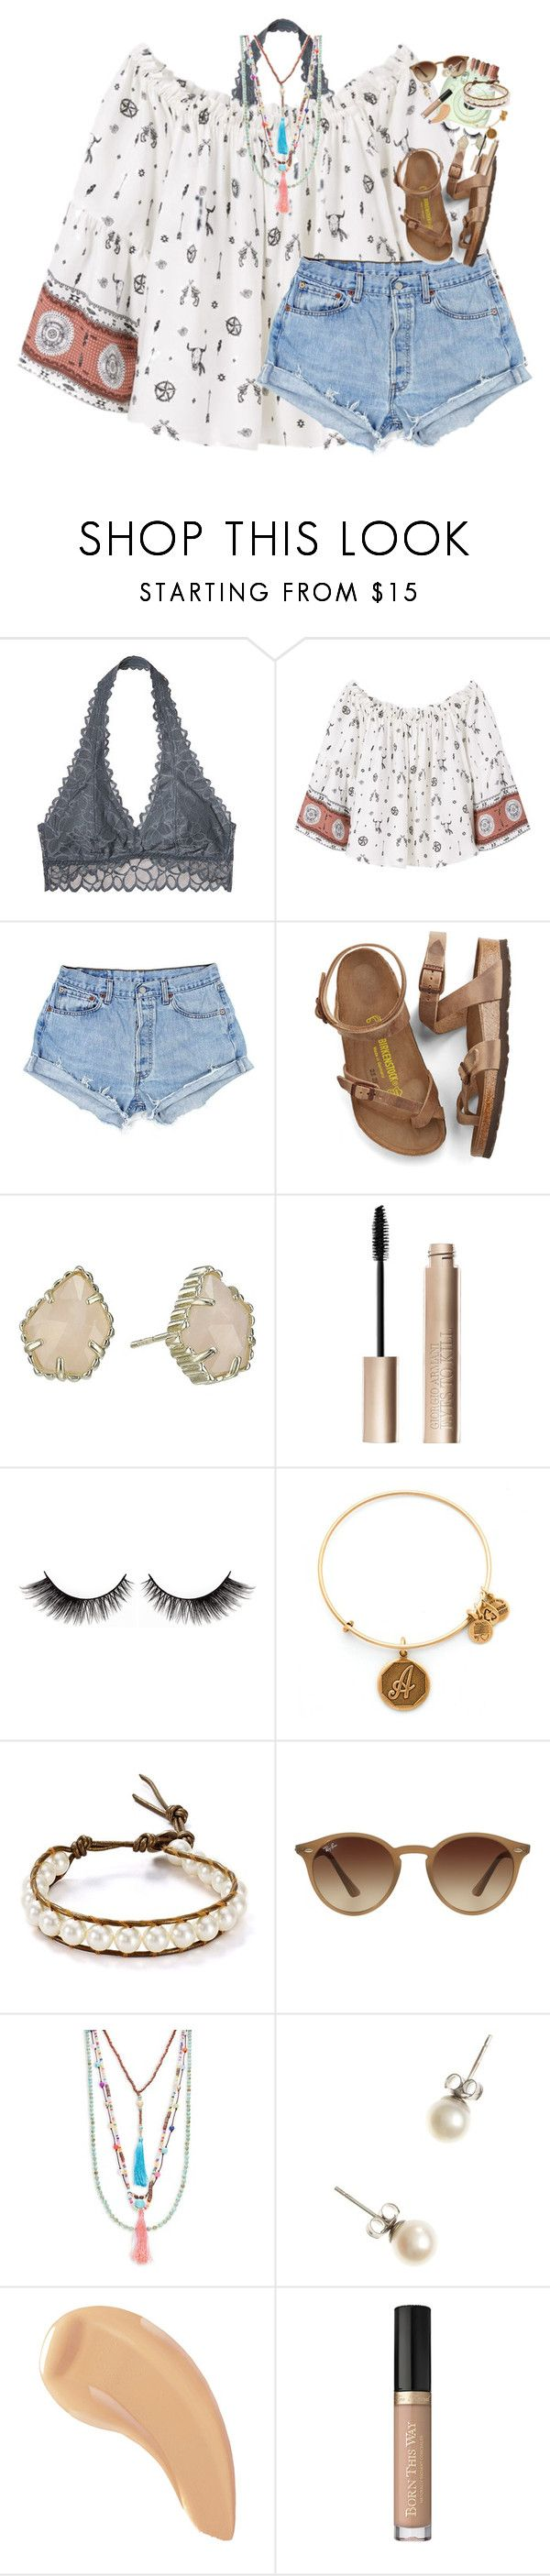 """fr this is so messy but idec"" by classynsouthern ❤ liked on Polyvore featuring Victoria's Secret, MANGO, Birkenstock, Kendra Scott, Giorgio Armani, Fuji, Alex and Ani, Chan Luu, Ray-Ban and Panacea"